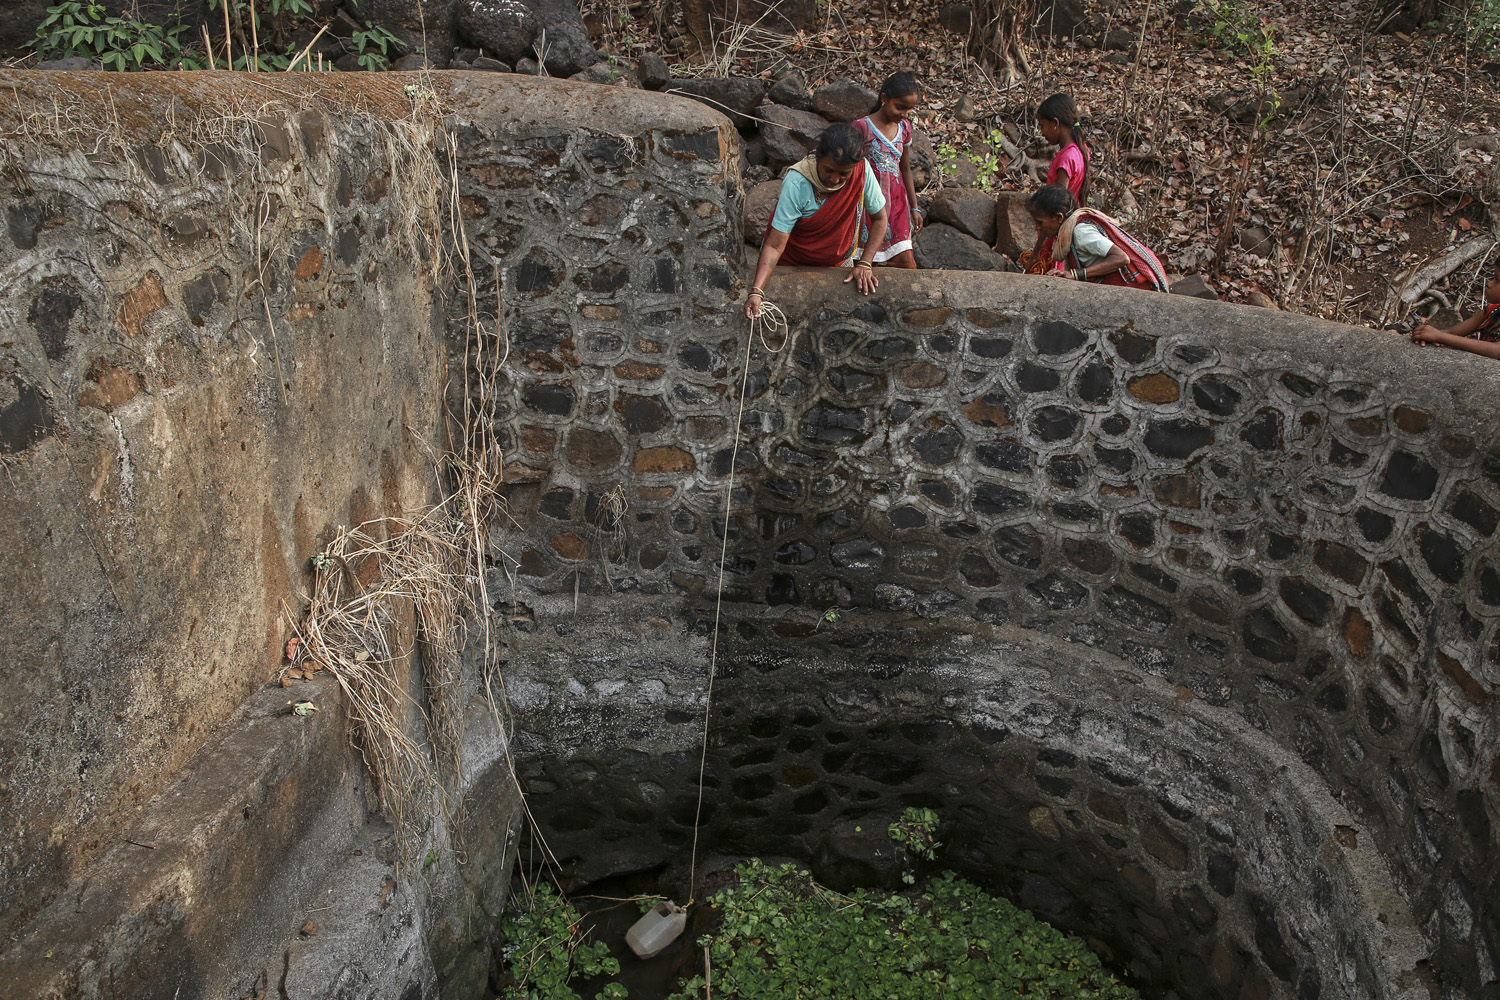 Bhaagi, third wife of Sakharam Bhagat takes out water from a well as Sakhri helps her outside their village in Denganmal.